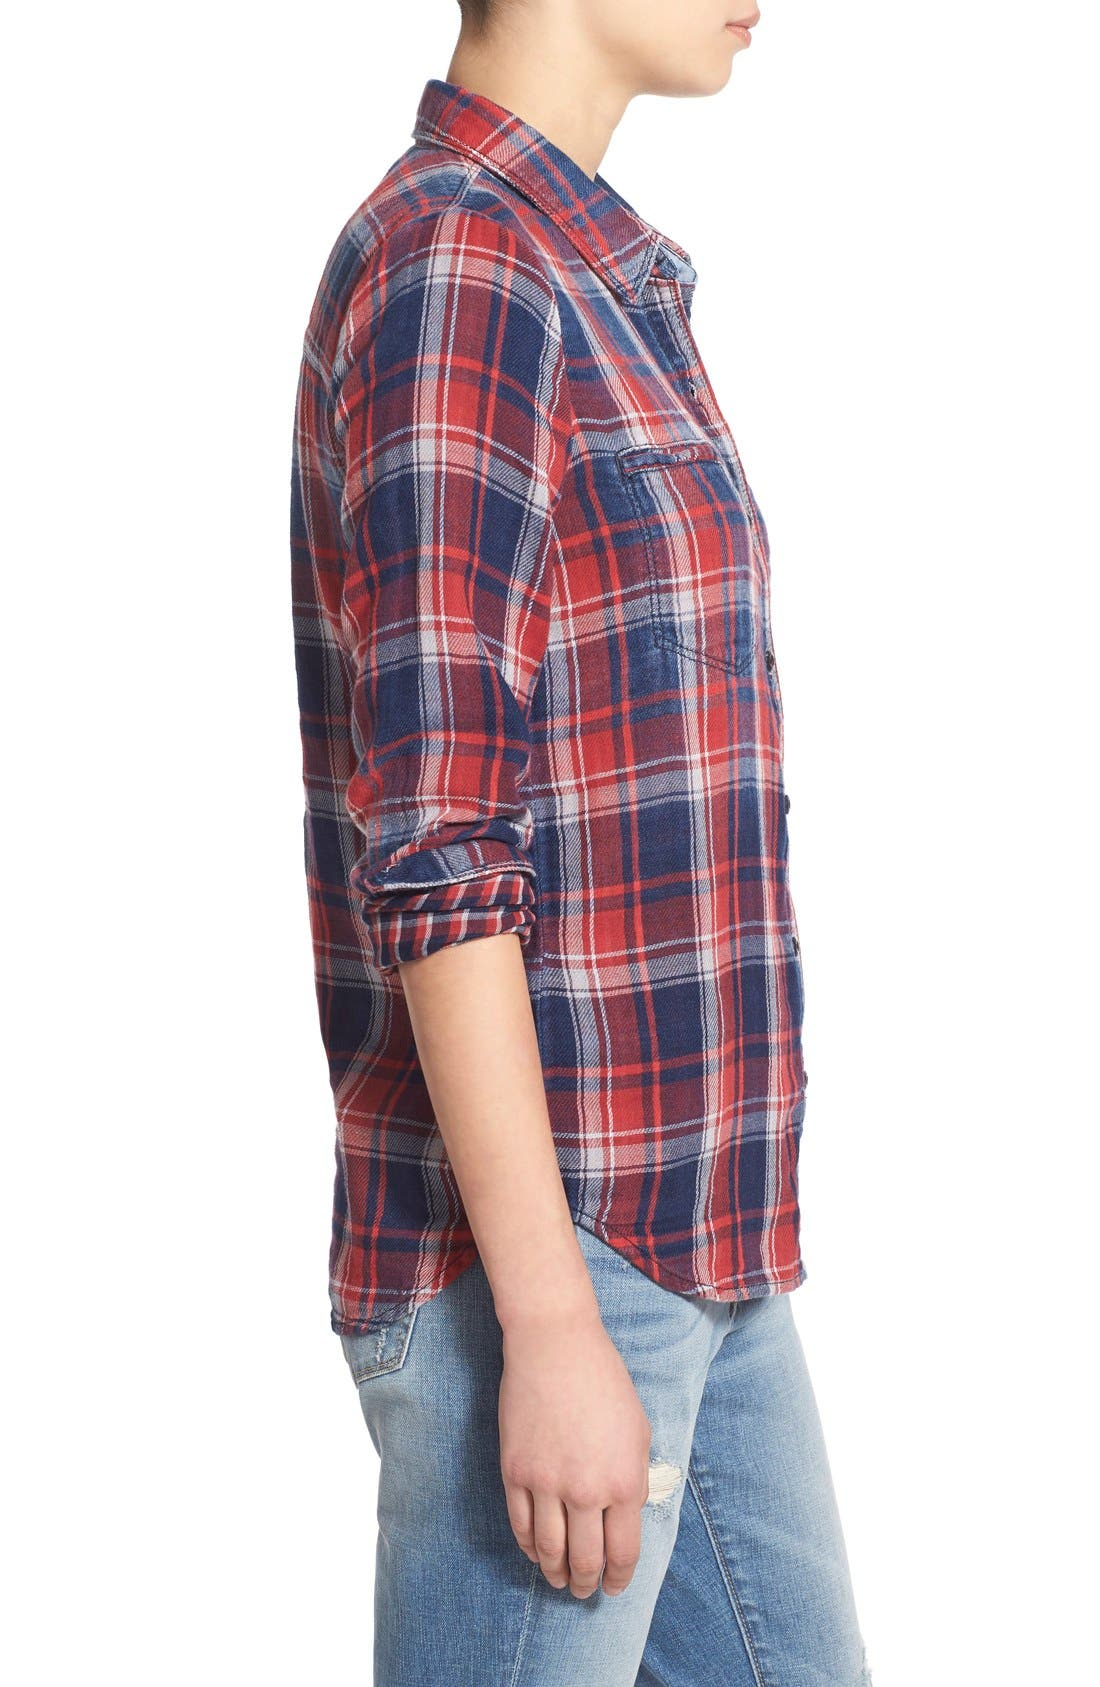 Treasure&Bond Classic Fit Plaid Shirt,                             Alternate thumbnail 5, color,                             400